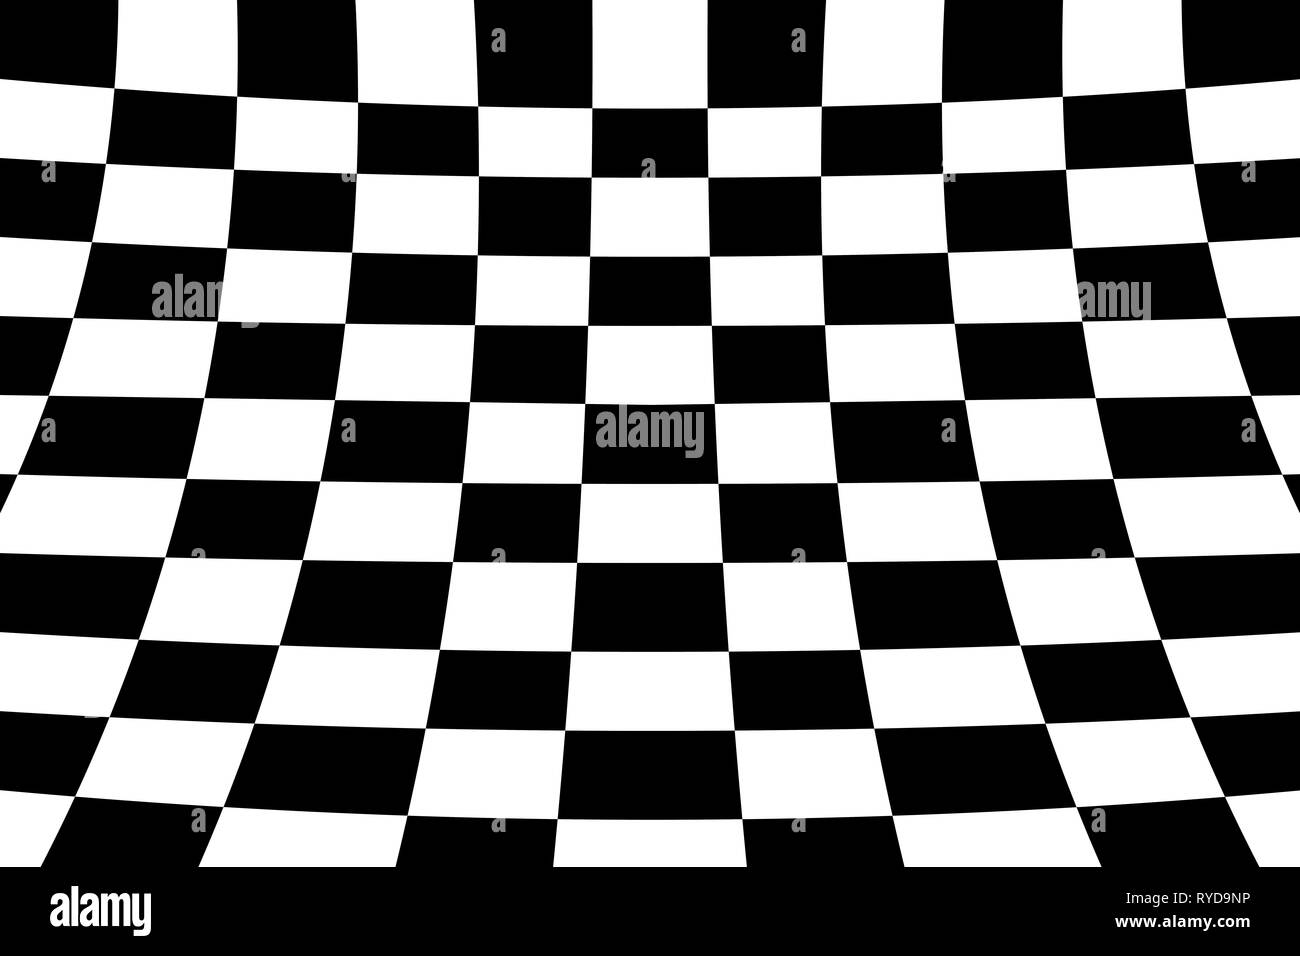 Warped perspective coloured checker board effect grid illustration black and white - Stock Image